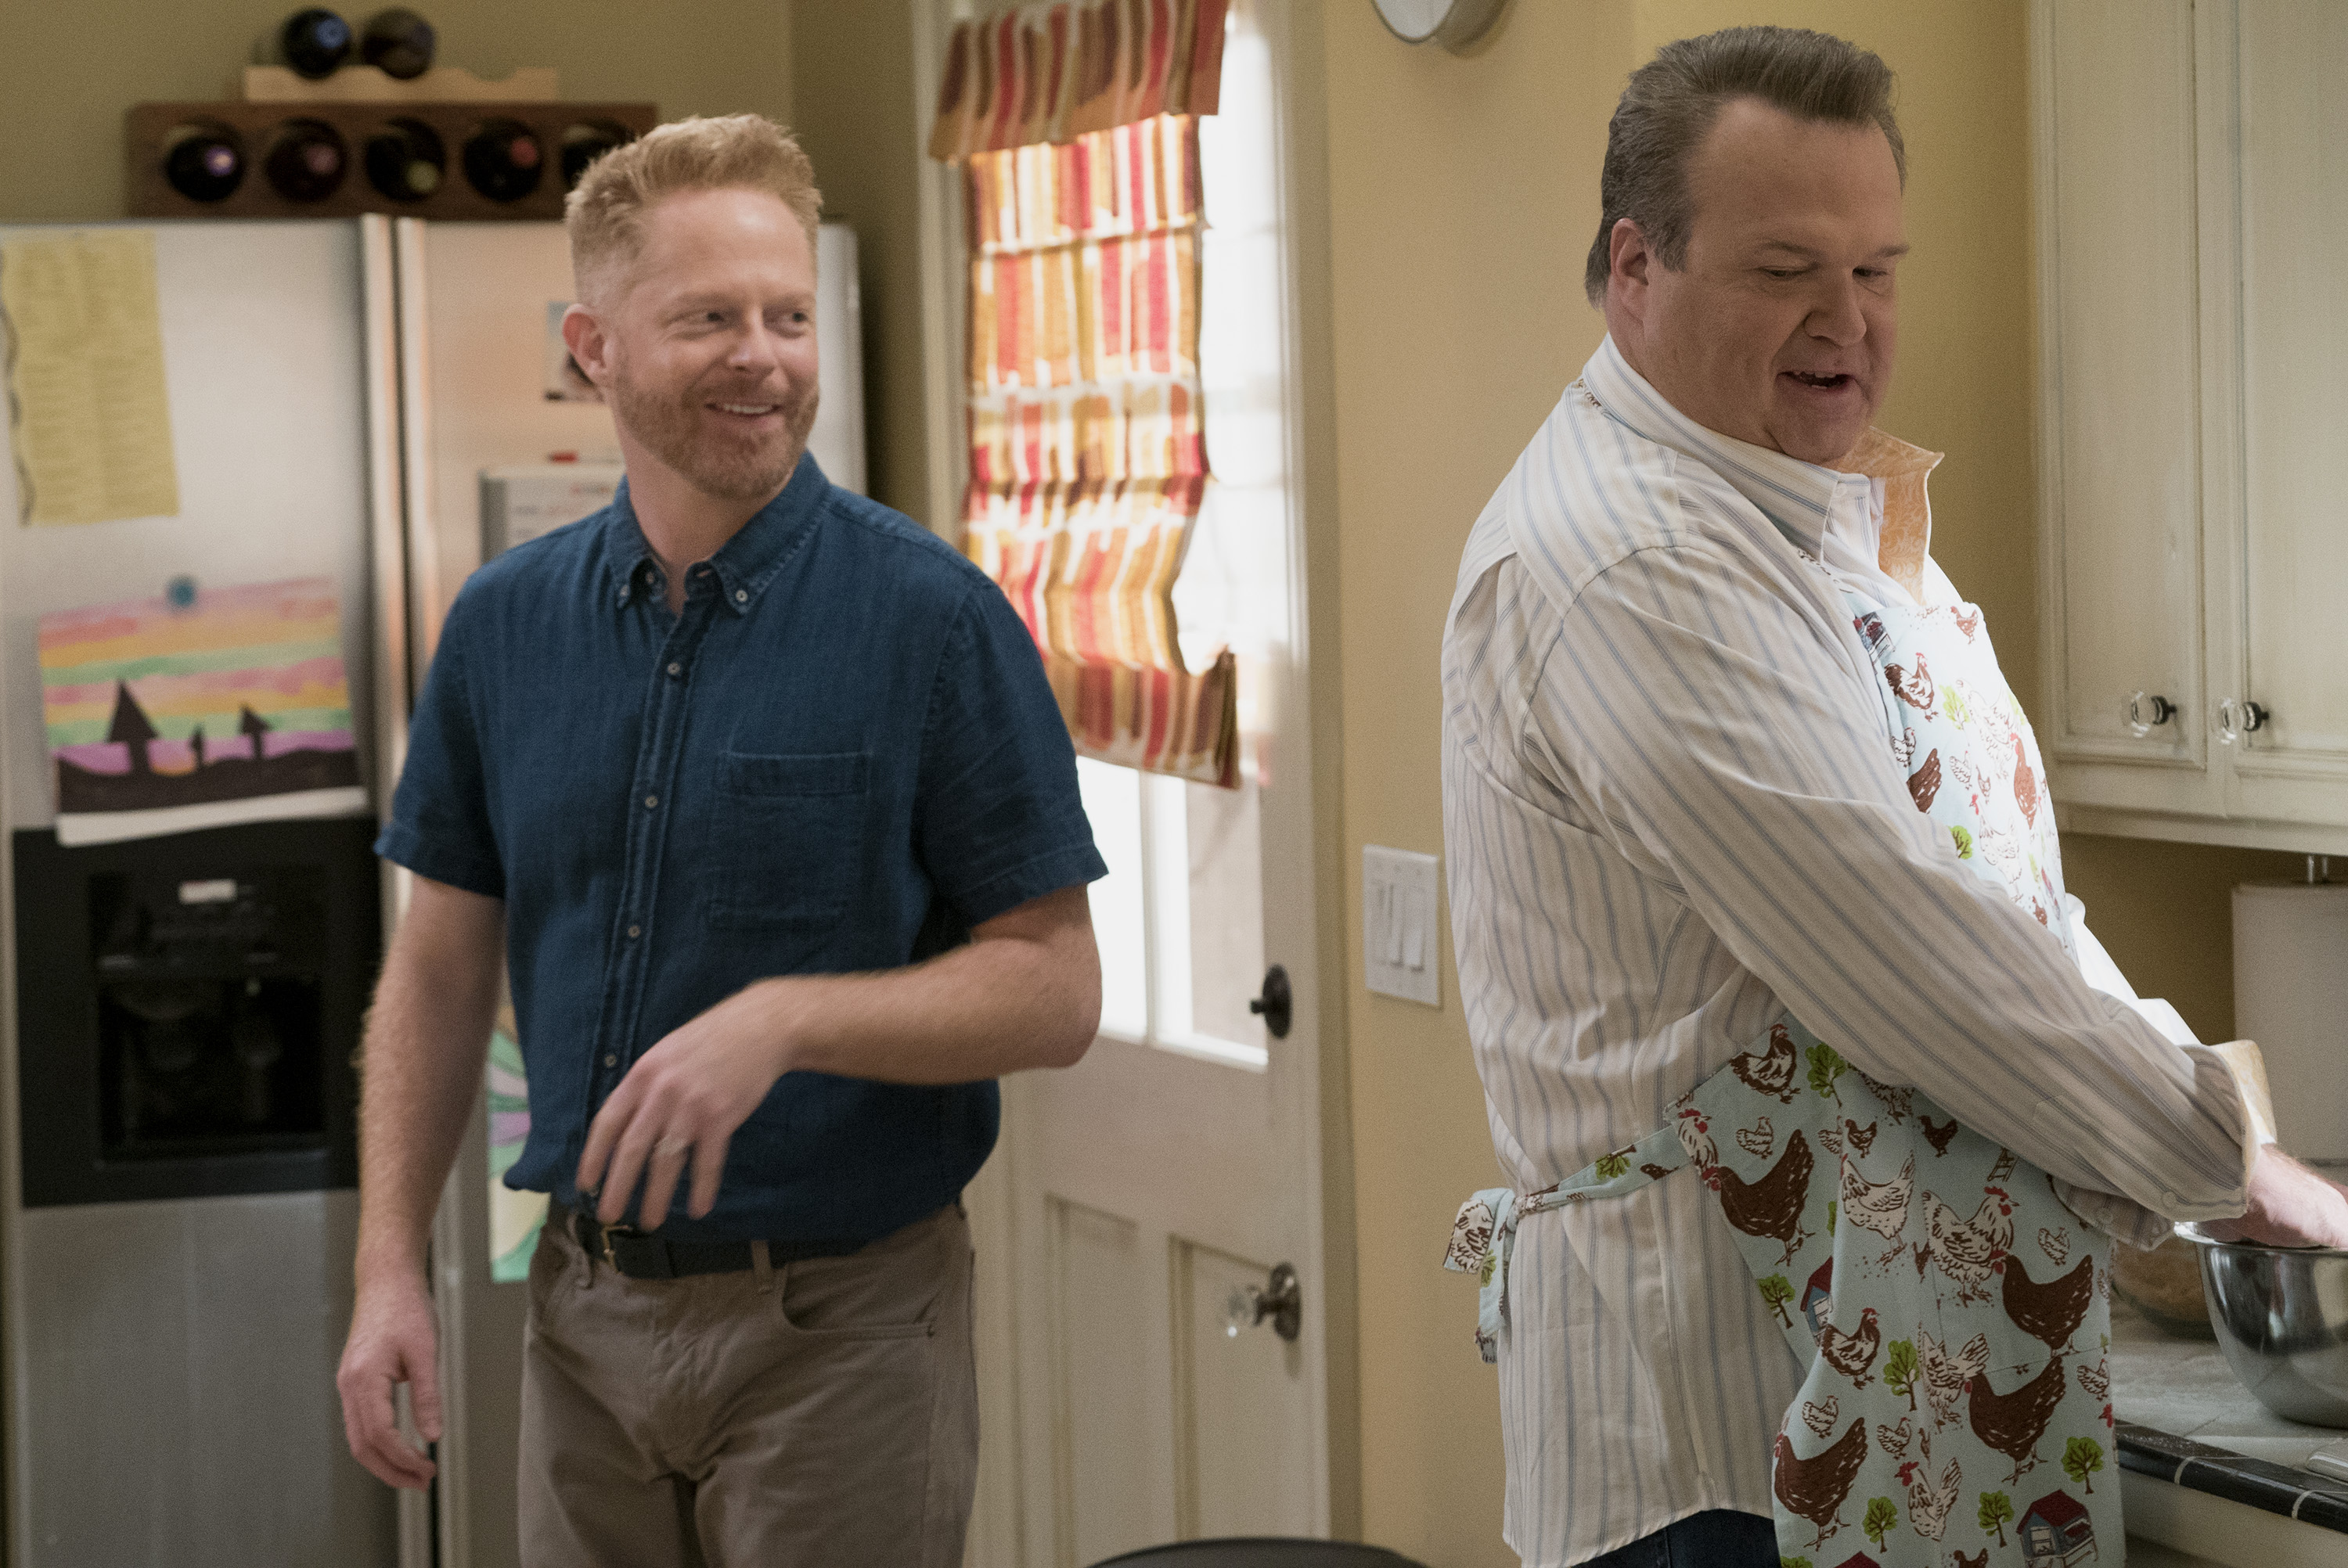 Modern Family: Catch of the Day | Season 9 | Episode 3